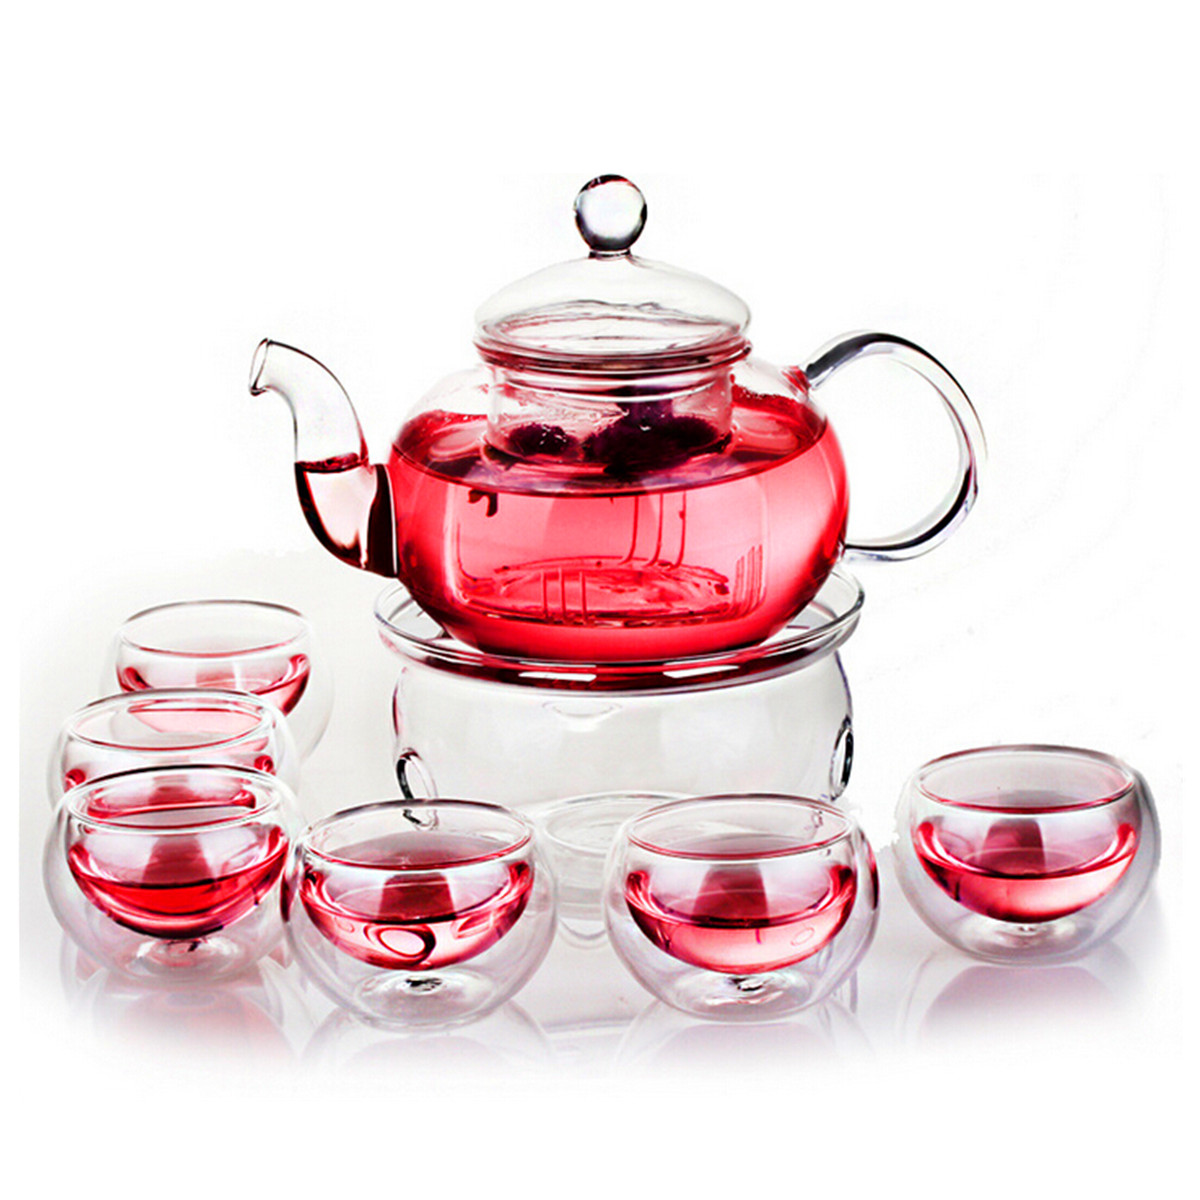 600ml Teapot Set Heat-resistant Glass Teapot With Round Candle Holder Teacup Flower Tea Kung Fu Tea Pot Teaware Gift